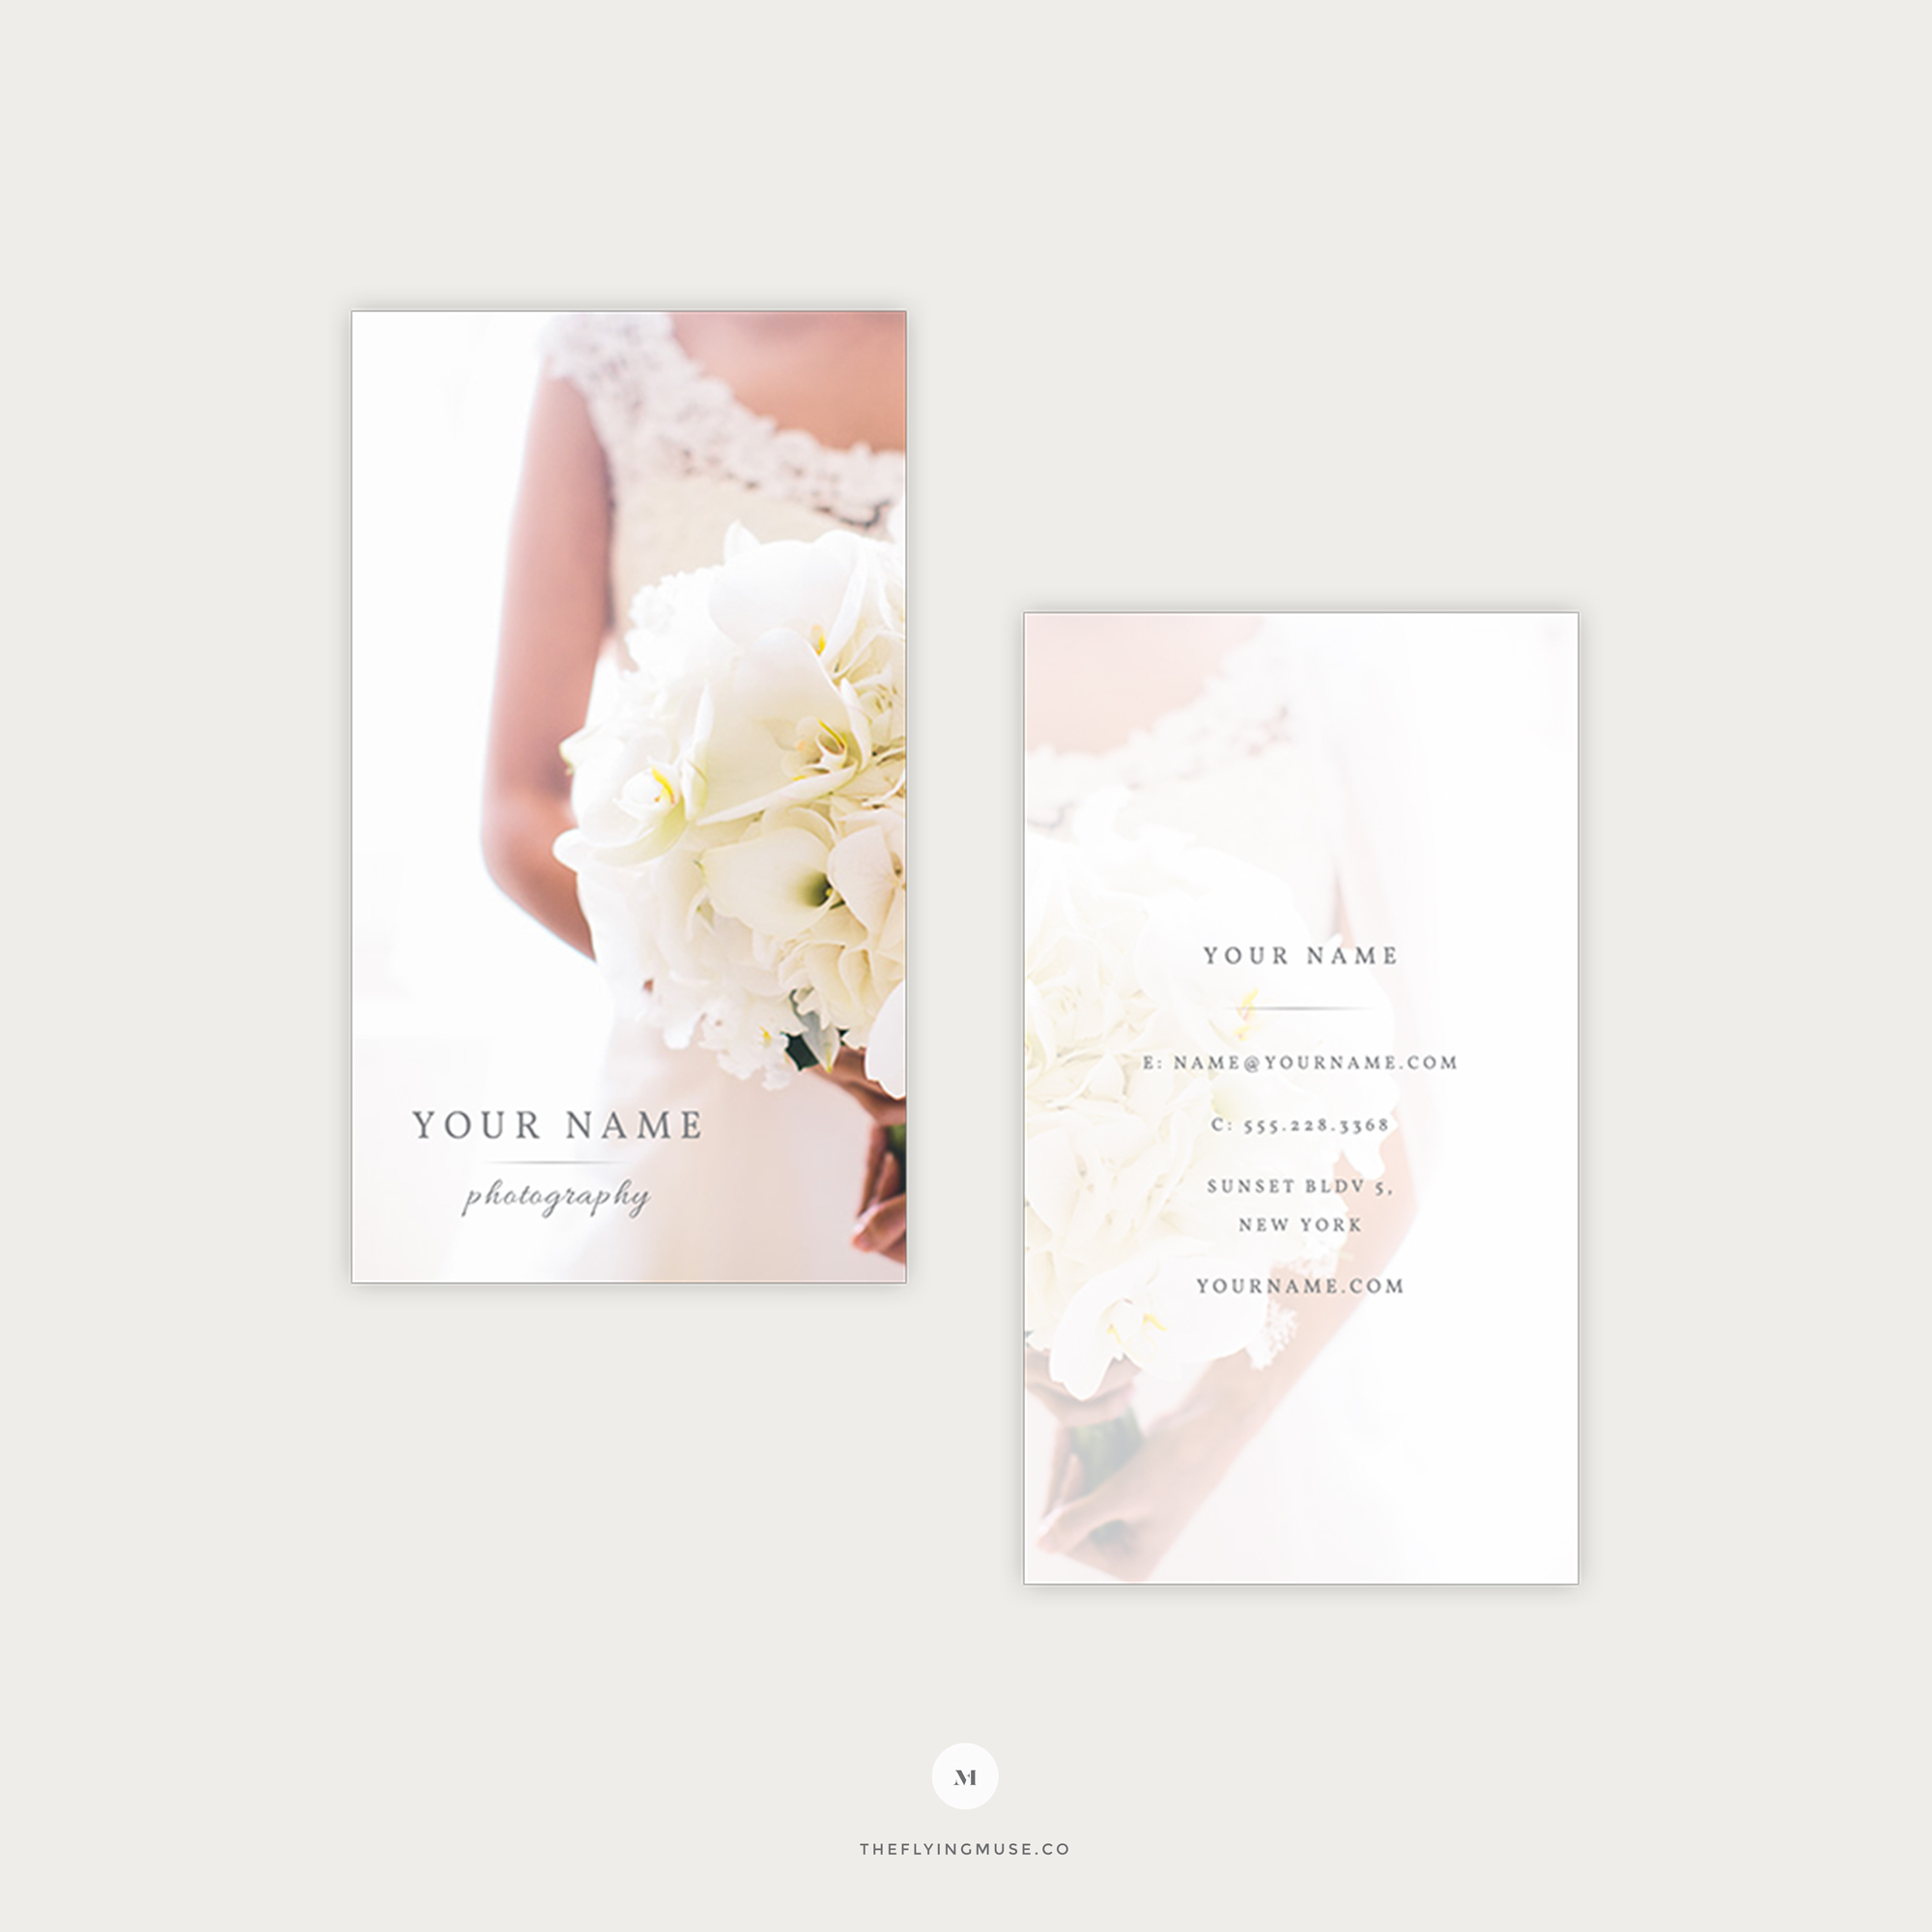 Elegant Vertical Wedding Photography Business Cards - the Flying Muse